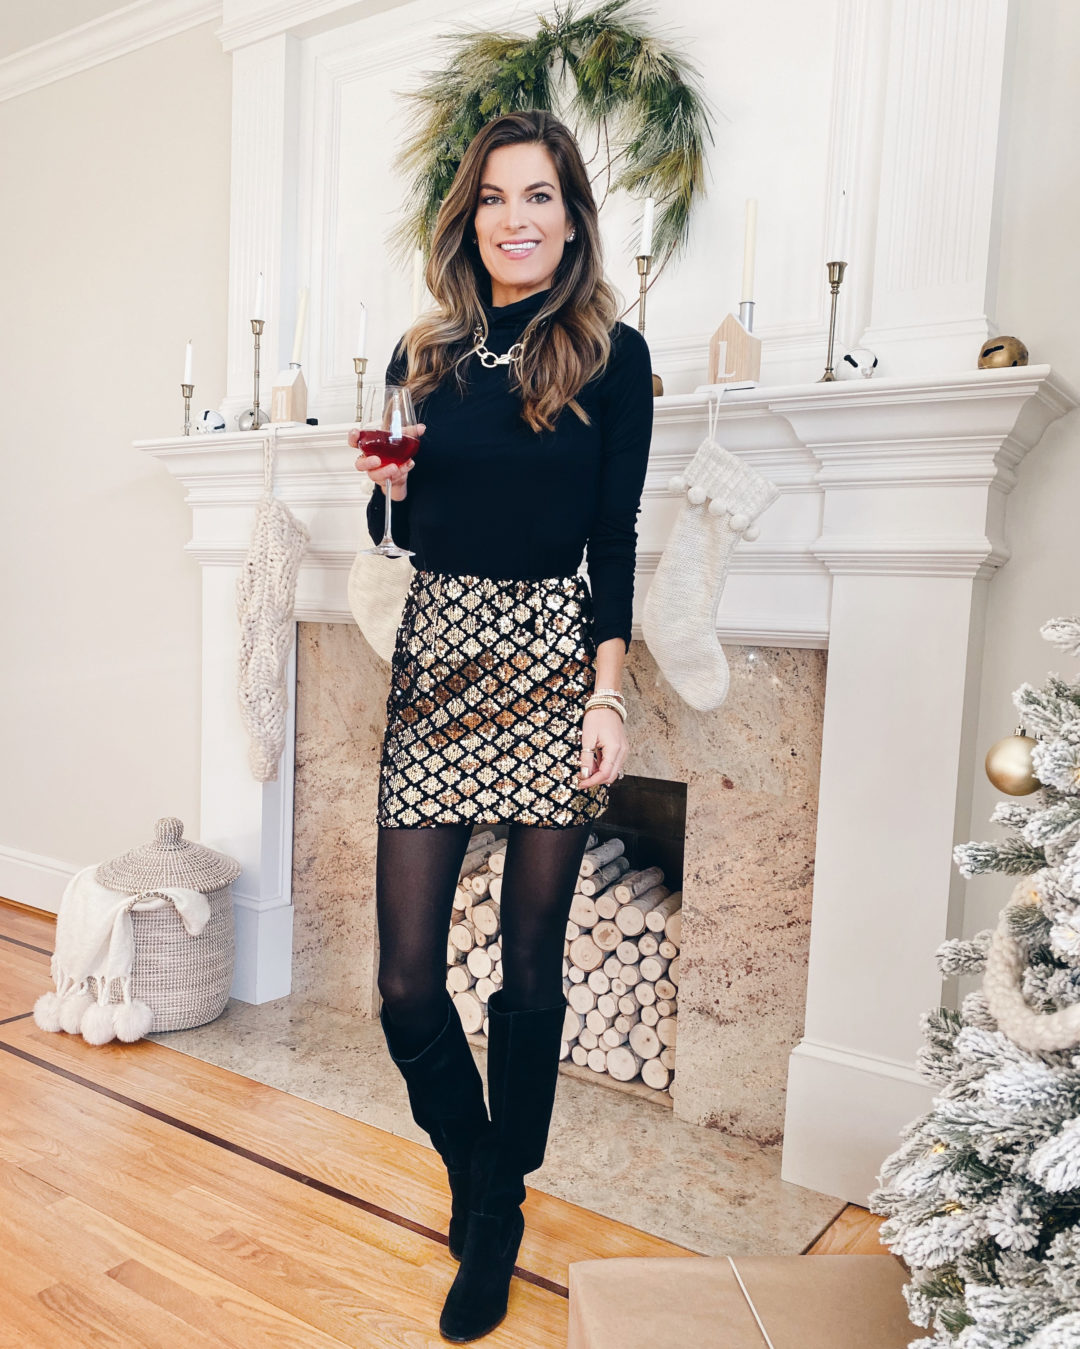 new years eve outfit ideas - black turtleneck top with amazon gold sequin mini skirt black tights and sole society black Prony wedge boots